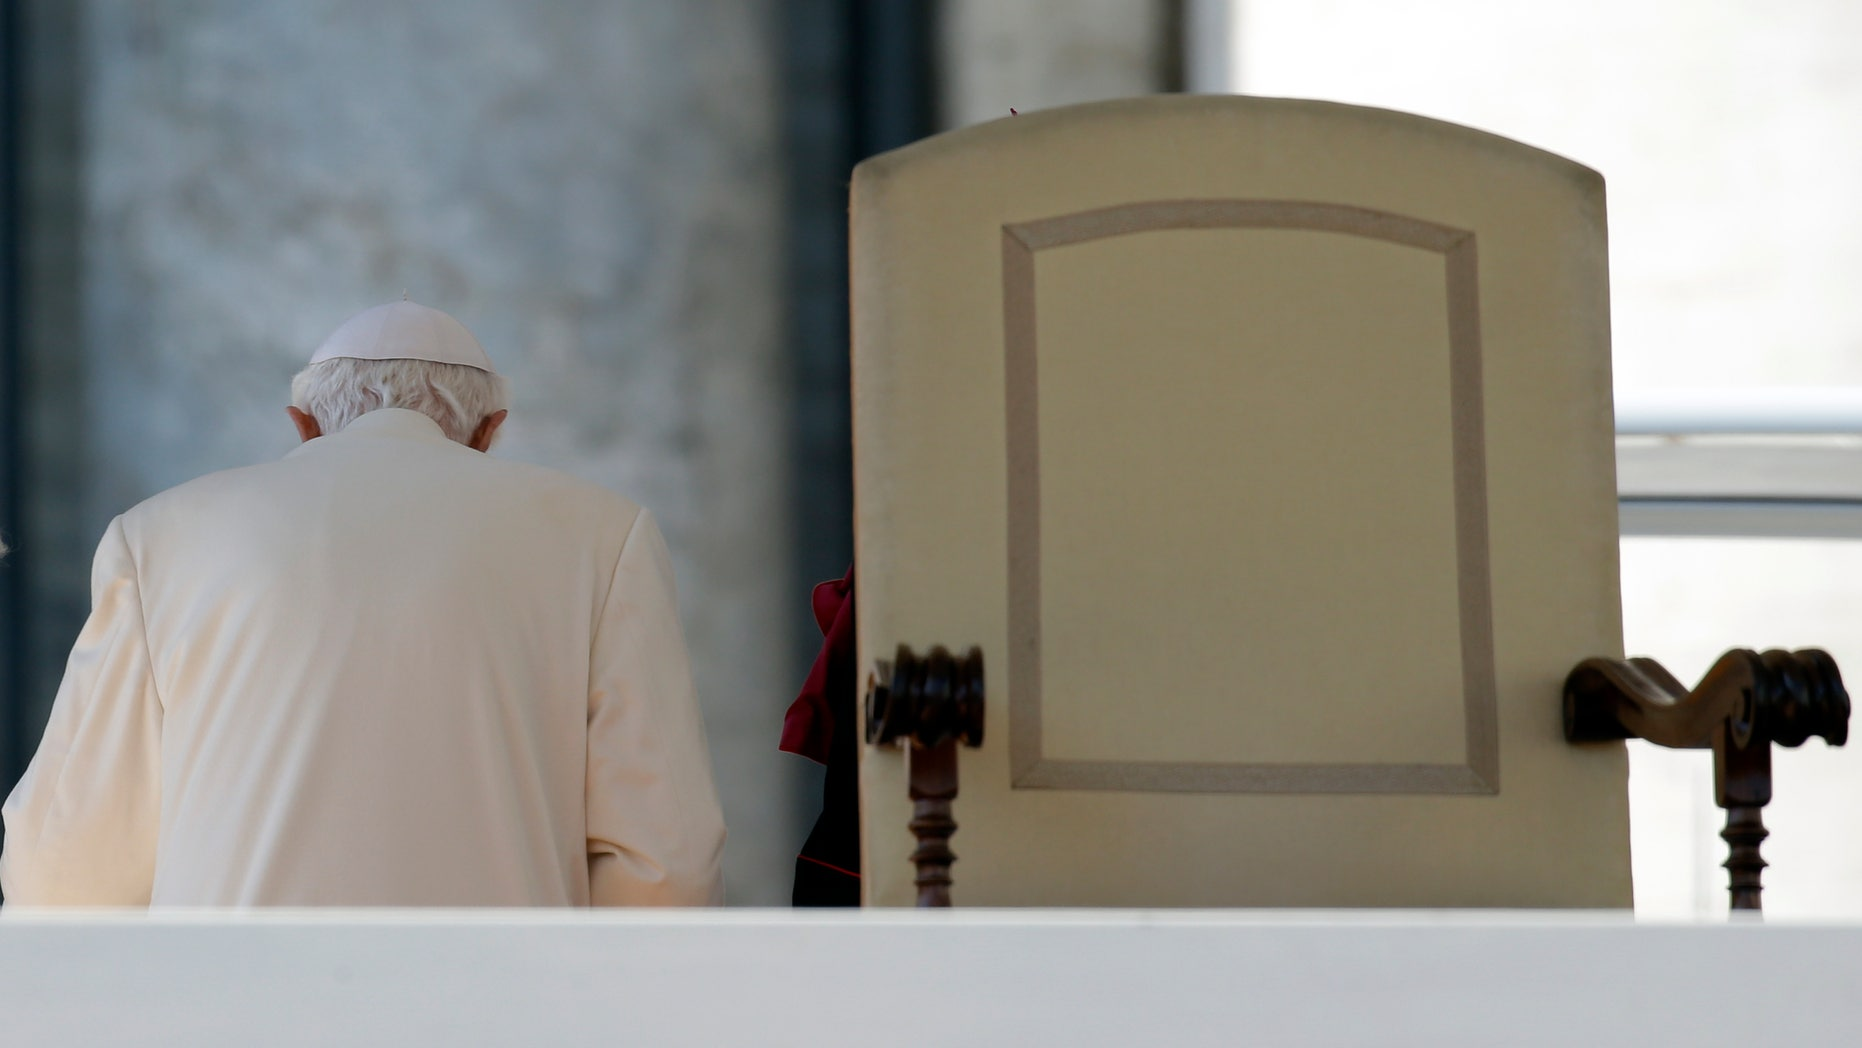 Feb. 27, 2013 FILE photo shows Pope Benedict XVI leaving after celebrating his last general audience, in St. Peter's Square, at the Vatican.